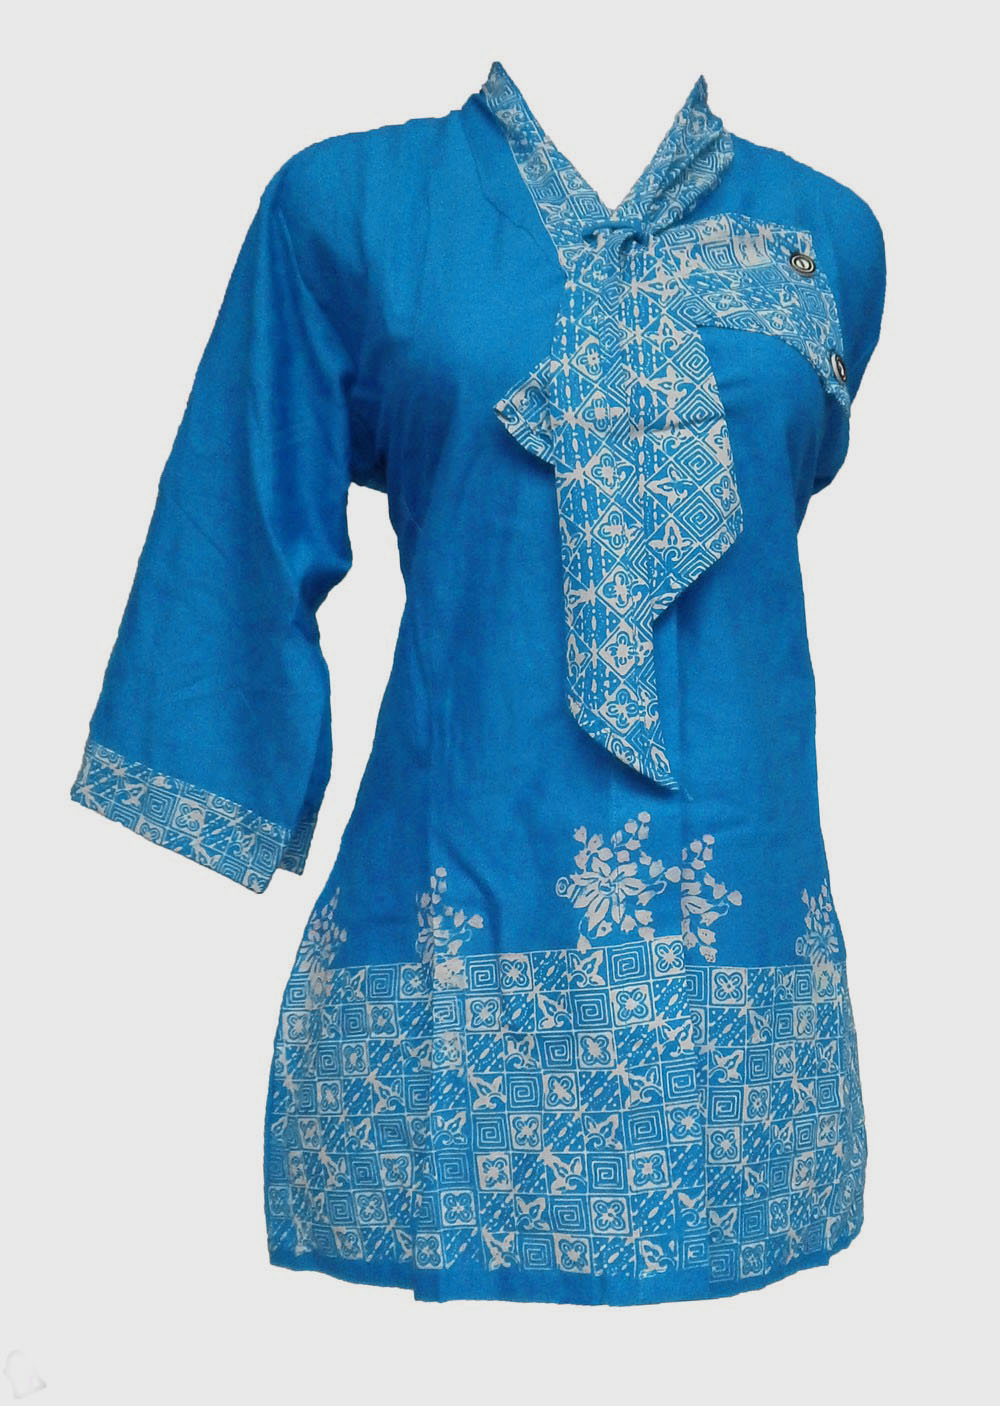 Model Jubah Batik | hairstylegalleries.com